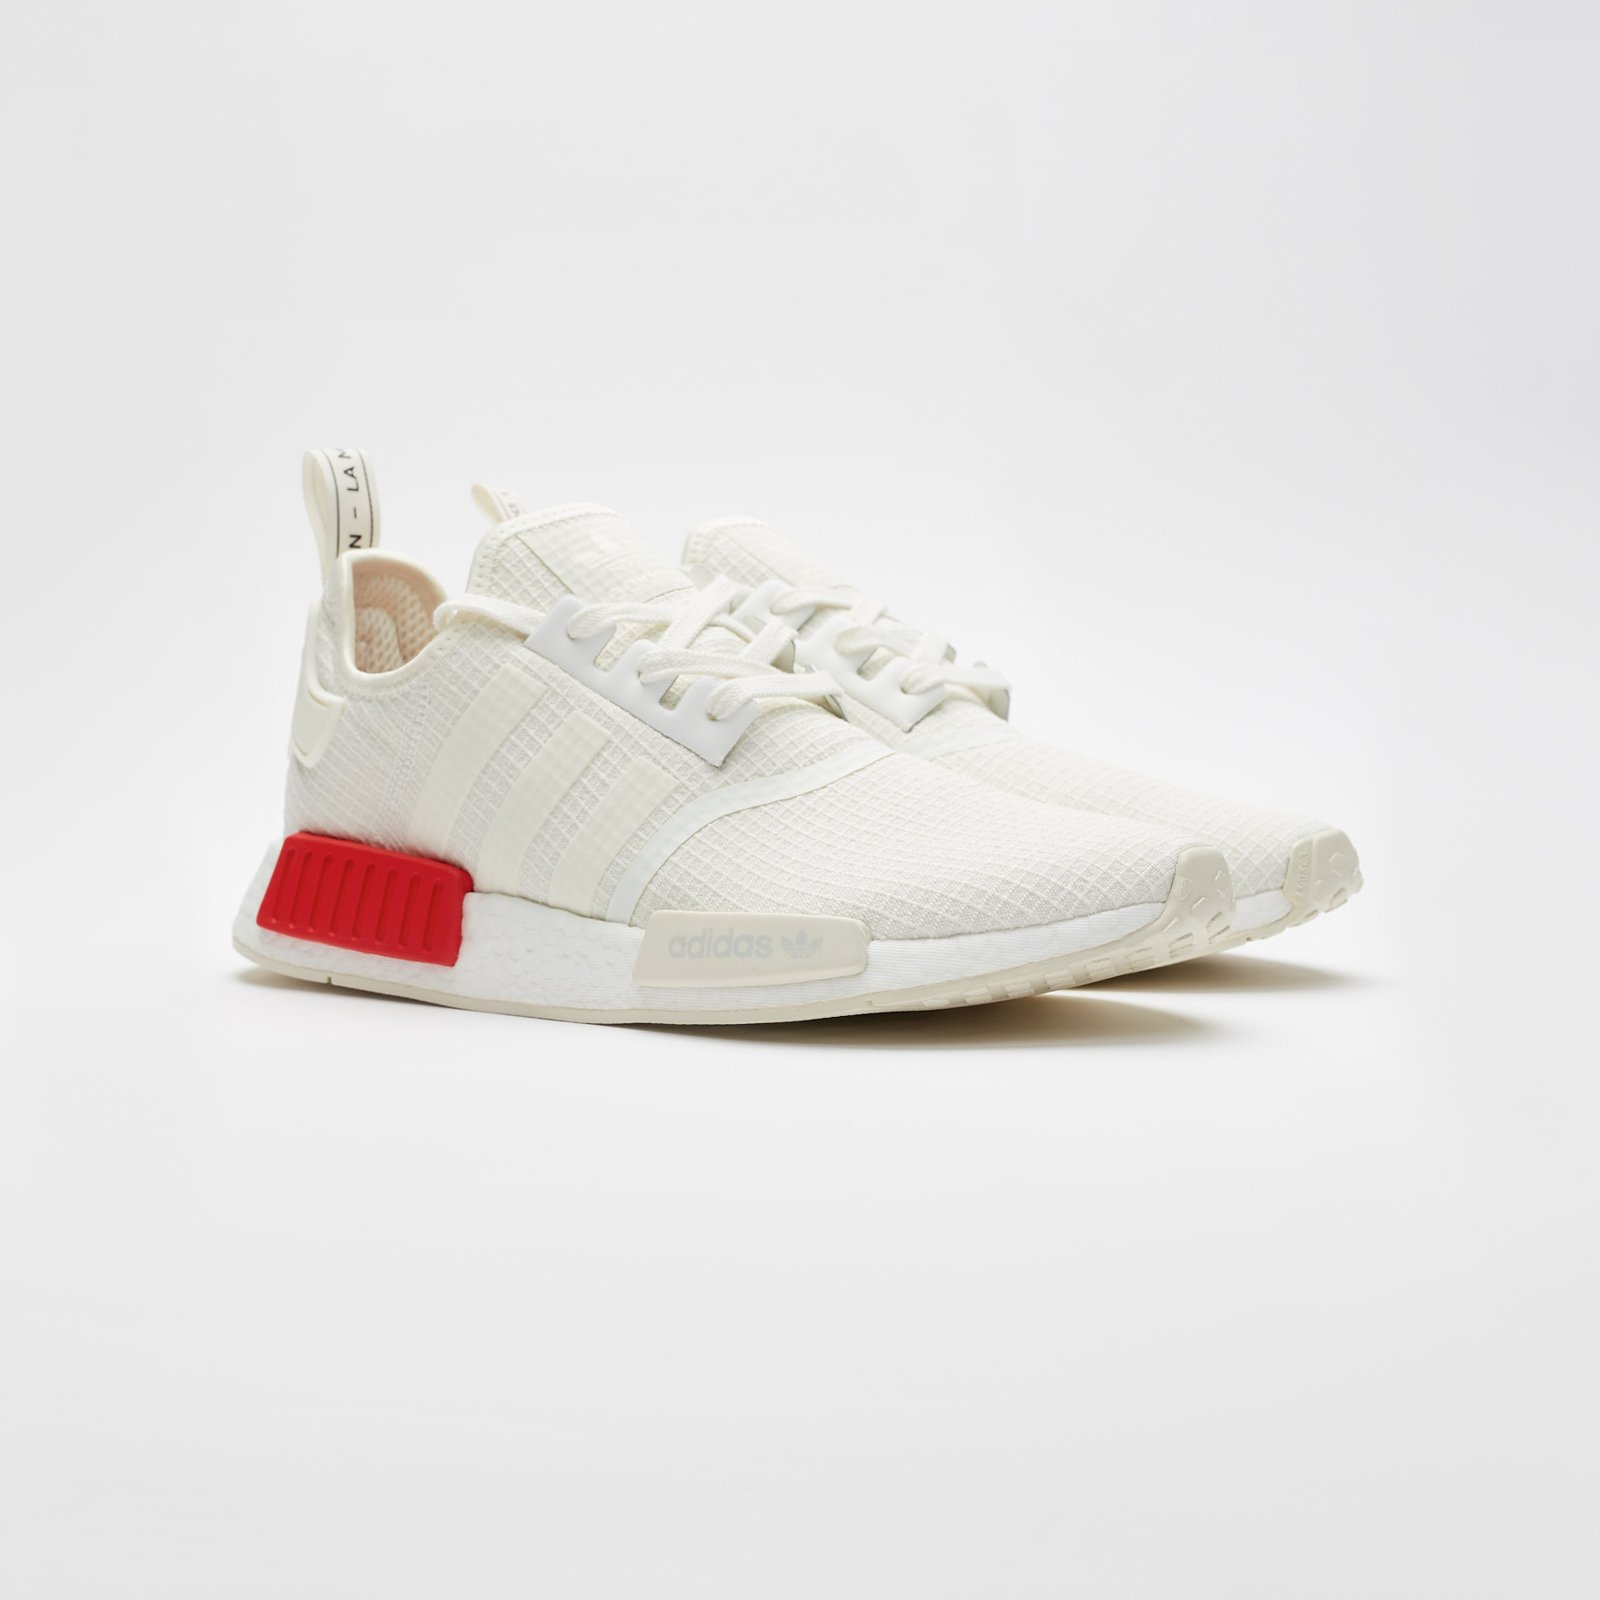 low priced e5d62 12d83 Adidas NMD R1 # B37619 Off White Red Men SZ 7.5 - 13